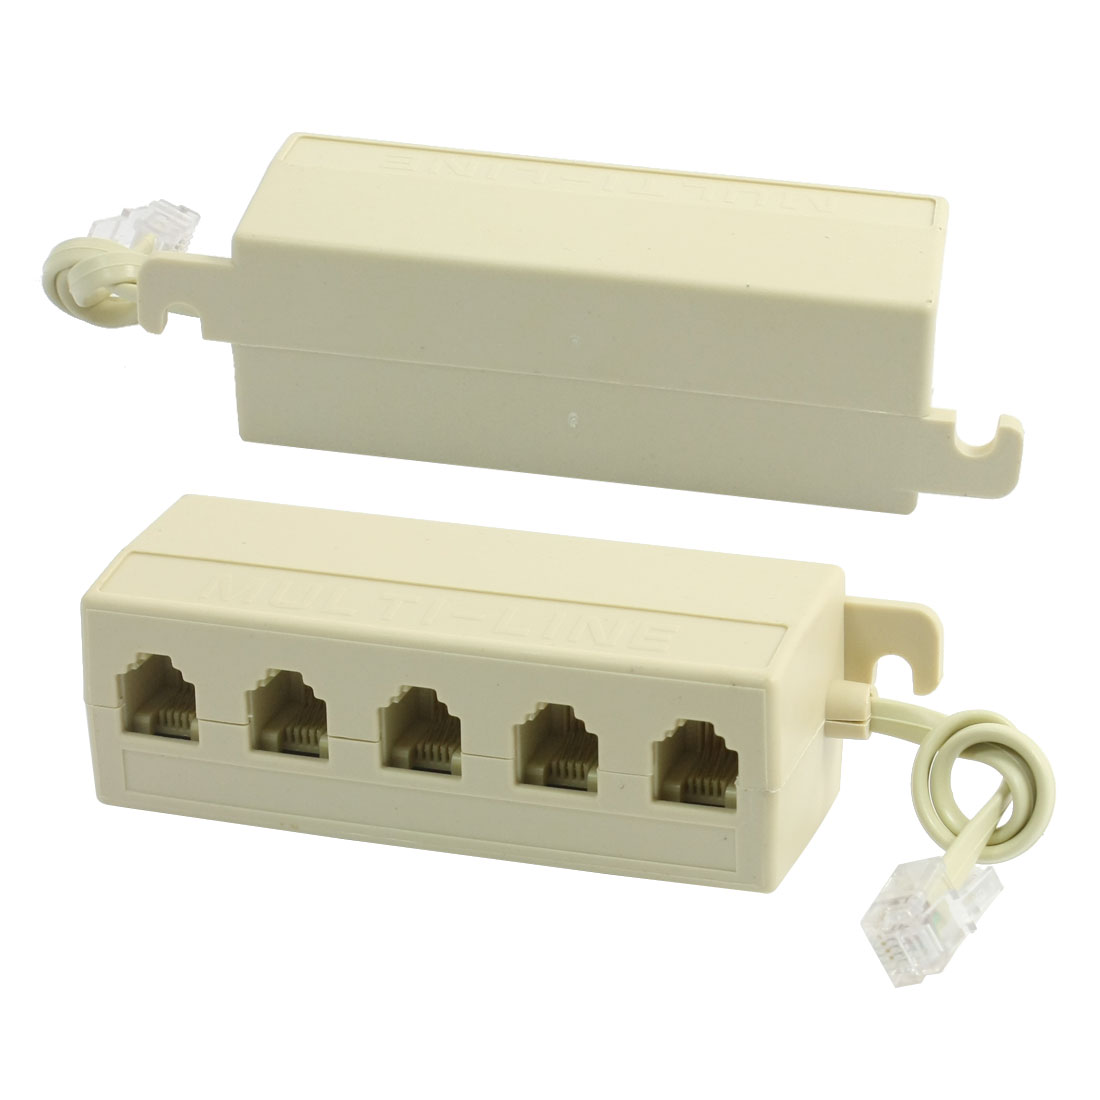 Unique Bargains 2pcs RJ11 6P4C to 6P2C M-5F 5 Way Telephone Line Modular Splitter